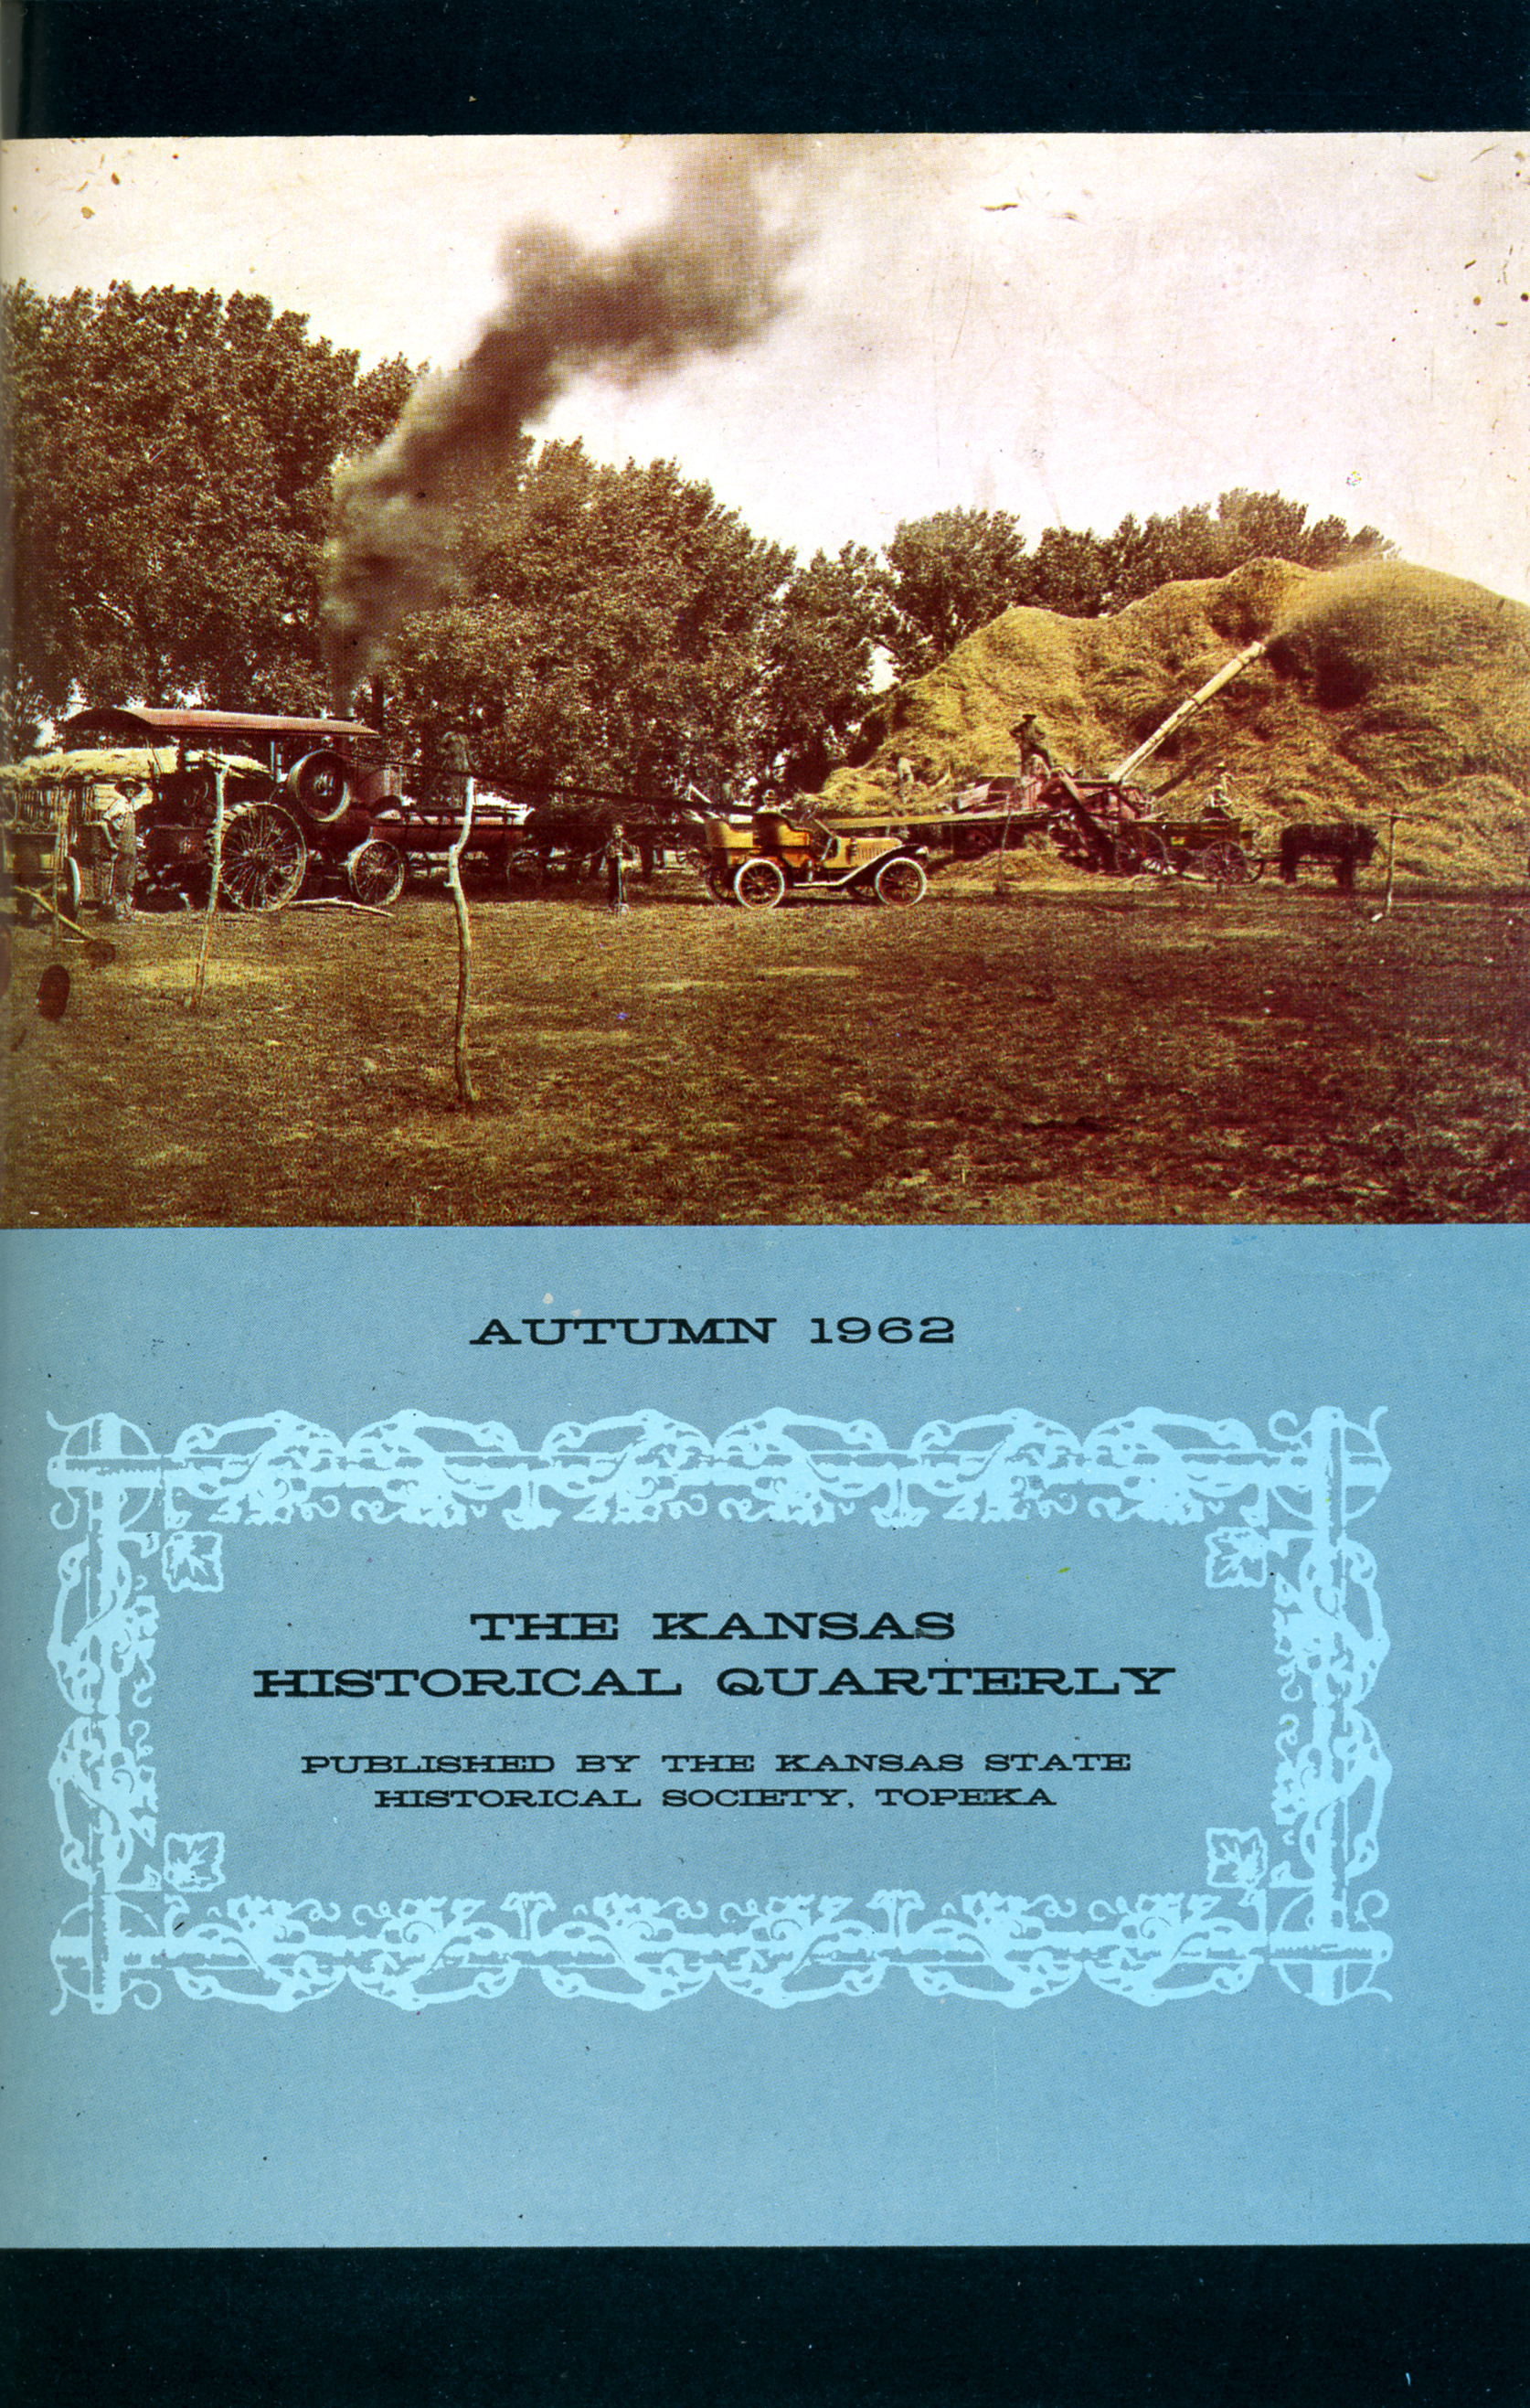 Kansas Historical Quarterly, Autumn 1962